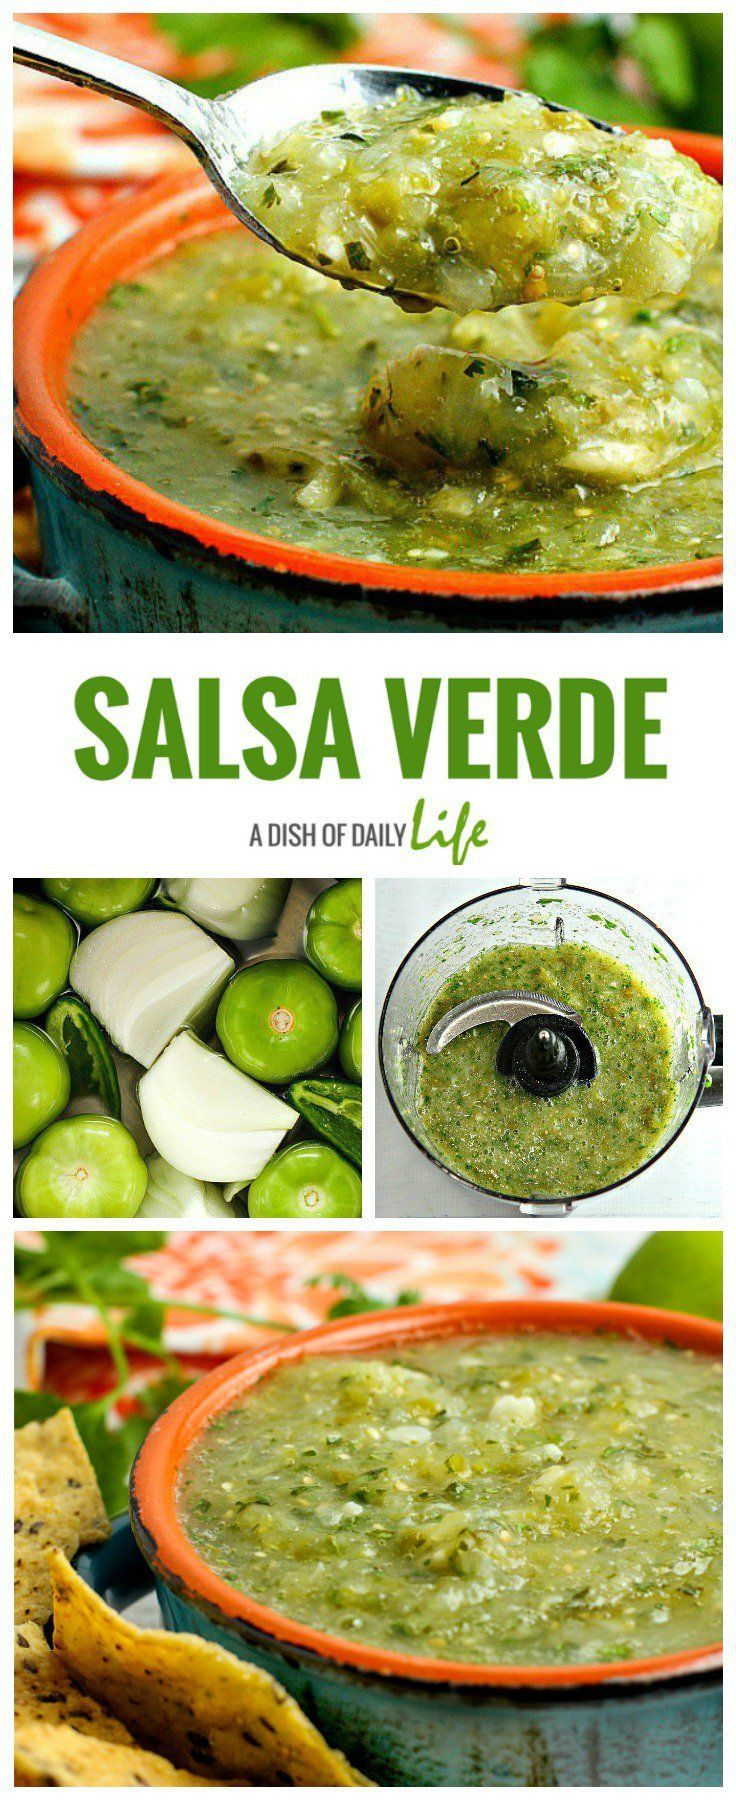 Verde Learn how to make authentic Salsa Verde! This recipe will be a hit on Mexican night or Cinco de Mayo, perfect for game day too!  Great with chips, over burritos and enchiladas, and perfect as an accompaniment to just about any Mexican dish!  Cinco de Mayo   Mexican recipes   appetizer   tomatillo salsaLearn how to make authentic Salsa Verde...